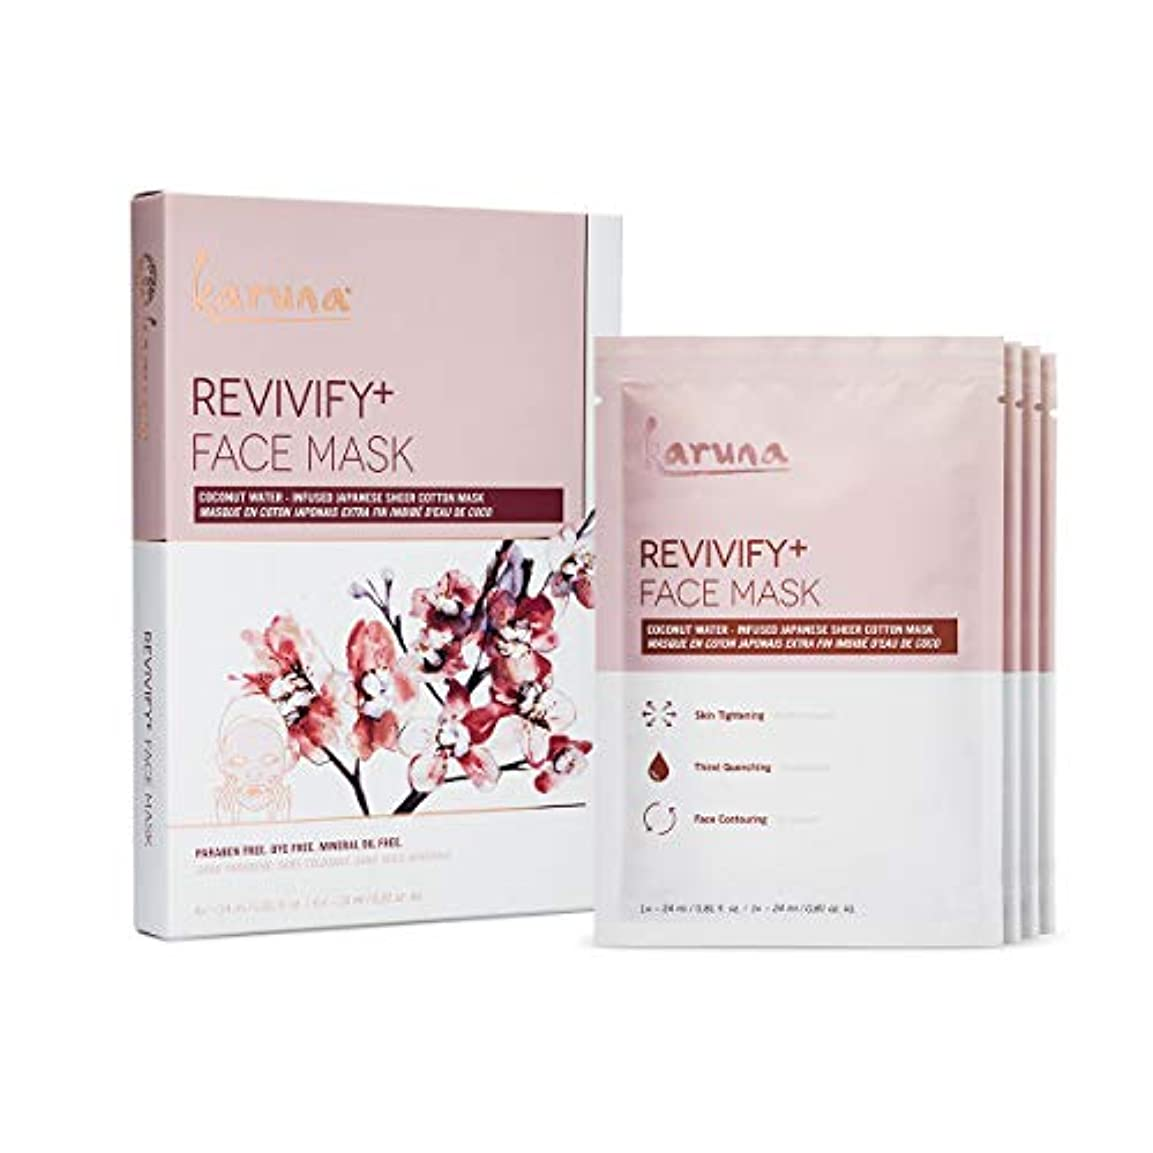 Karuna Revivify+ Face Mask 4sheets並行輸入品